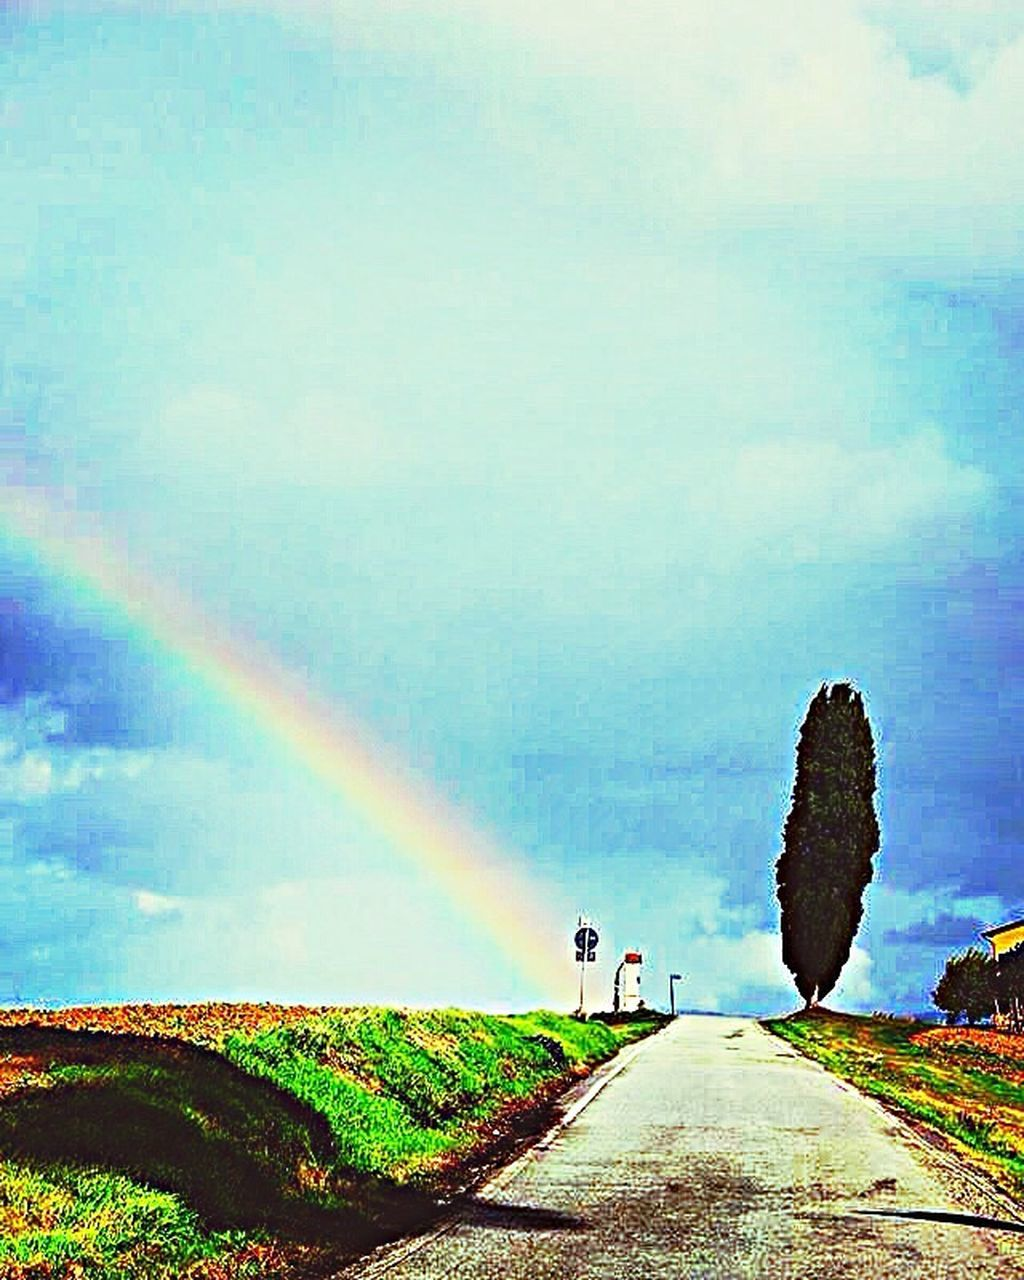 rainbow, day, scenics, tranquil scene, beauty in nature, nature, outdoors, double rainbow, tree, sky, tranquility, landscape, road, grass, spraying, water, one person, people